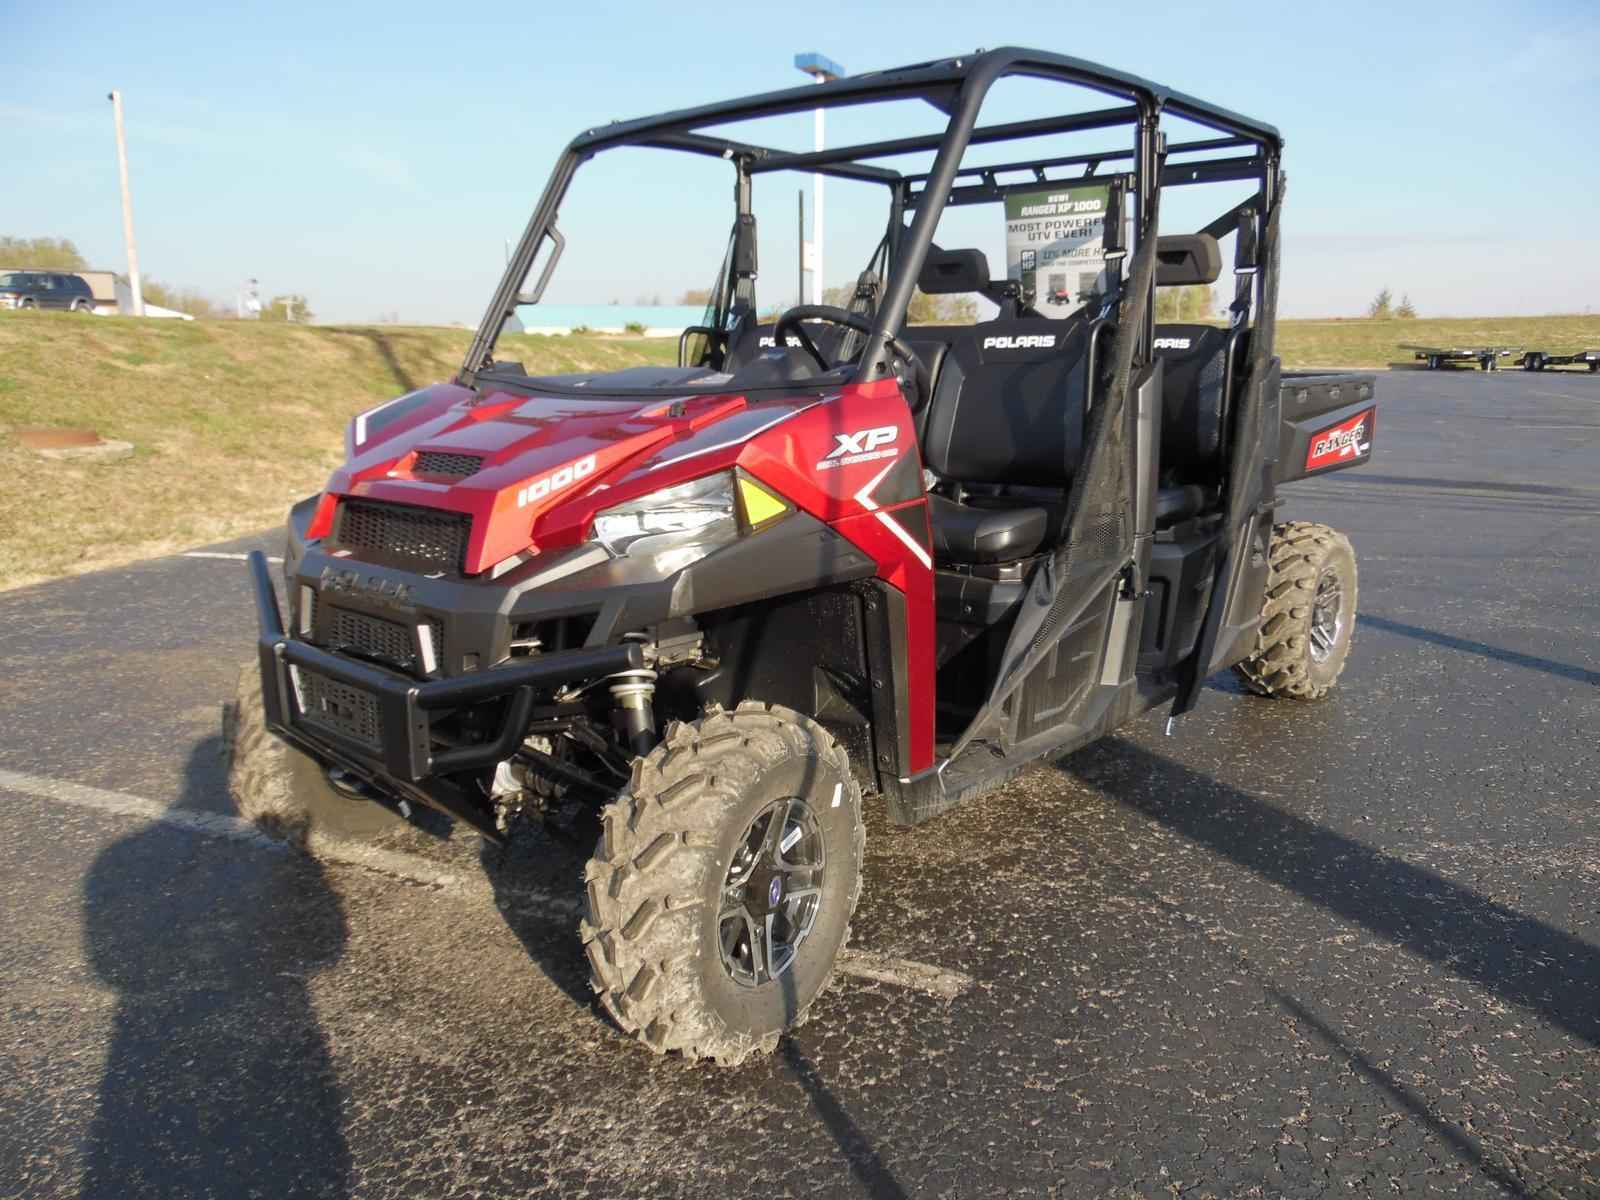 new 2017 polaris ranger crew xp 1000 eps sunset red atvs for sale in kentucky on atv trades. Black Bedroom Furniture Sets. Home Design Ideas